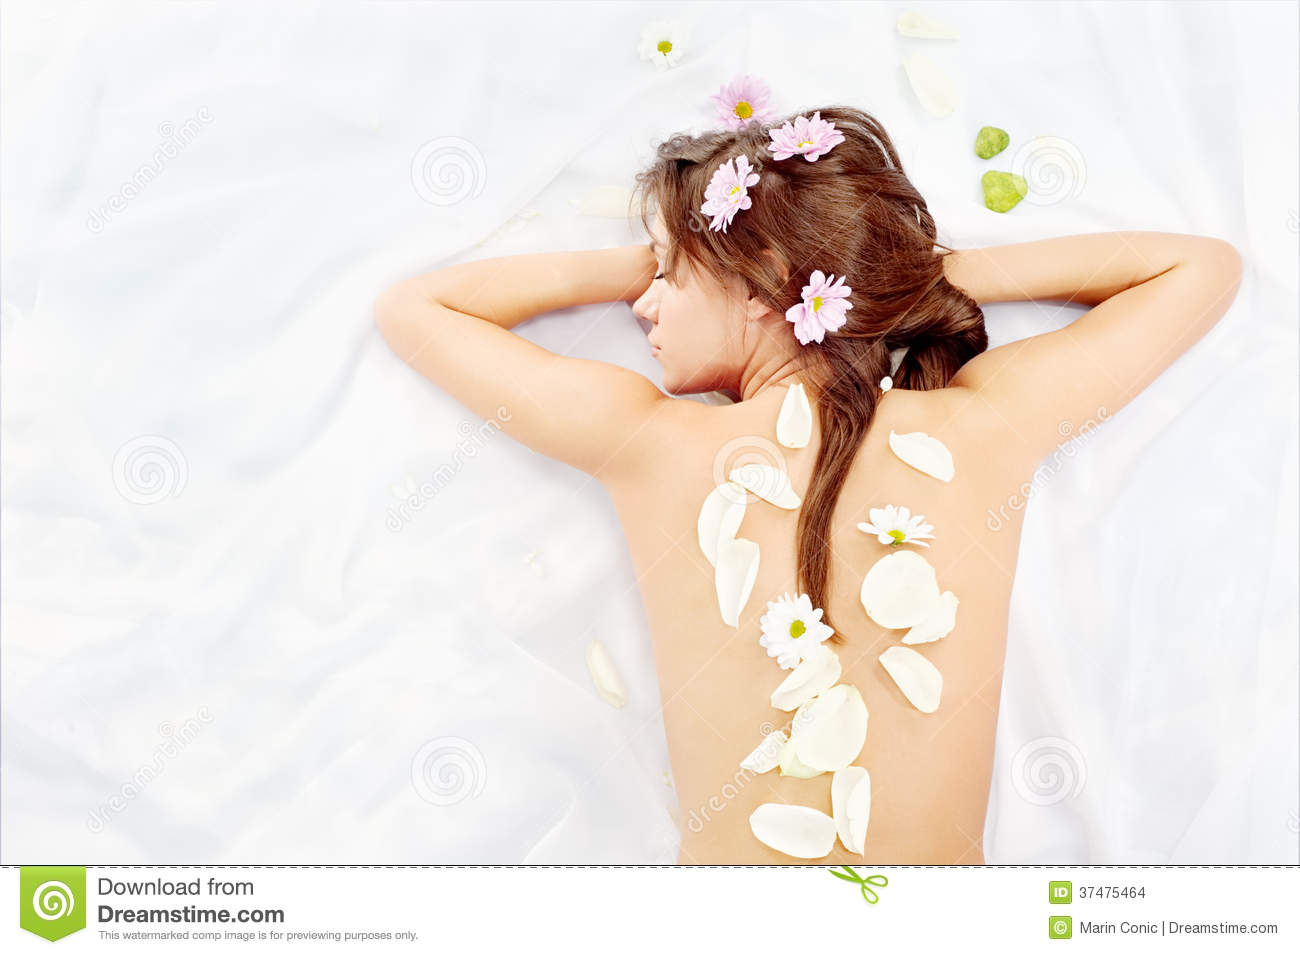 Women s back covered with petals and flowers